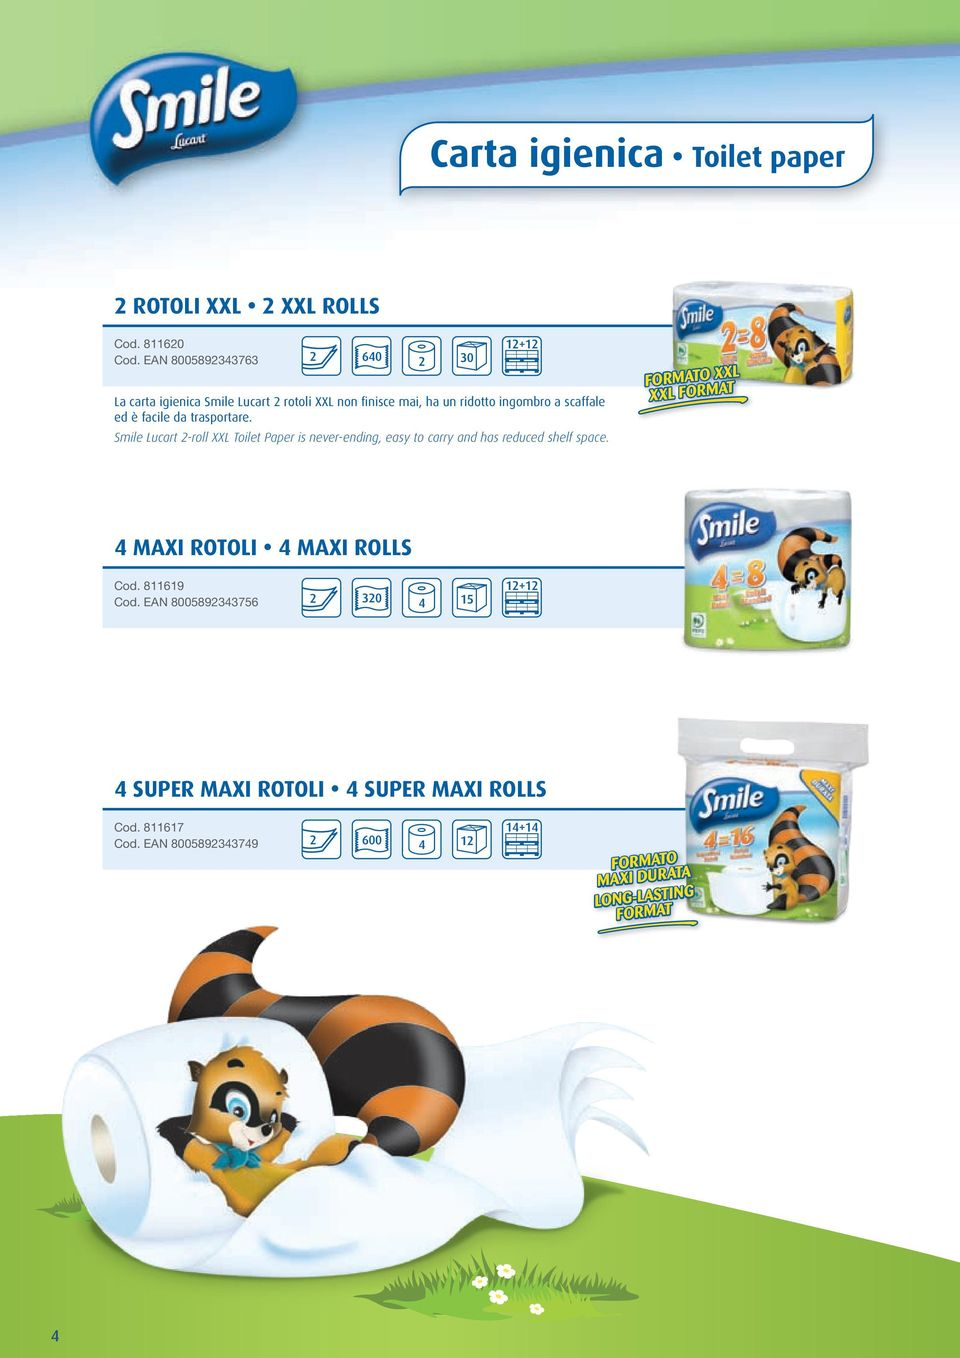 facile da trasportare. Smile Lucart 2-roll XXL Toilet Paper is never-ending, easy to carry and has reduced shelf space.